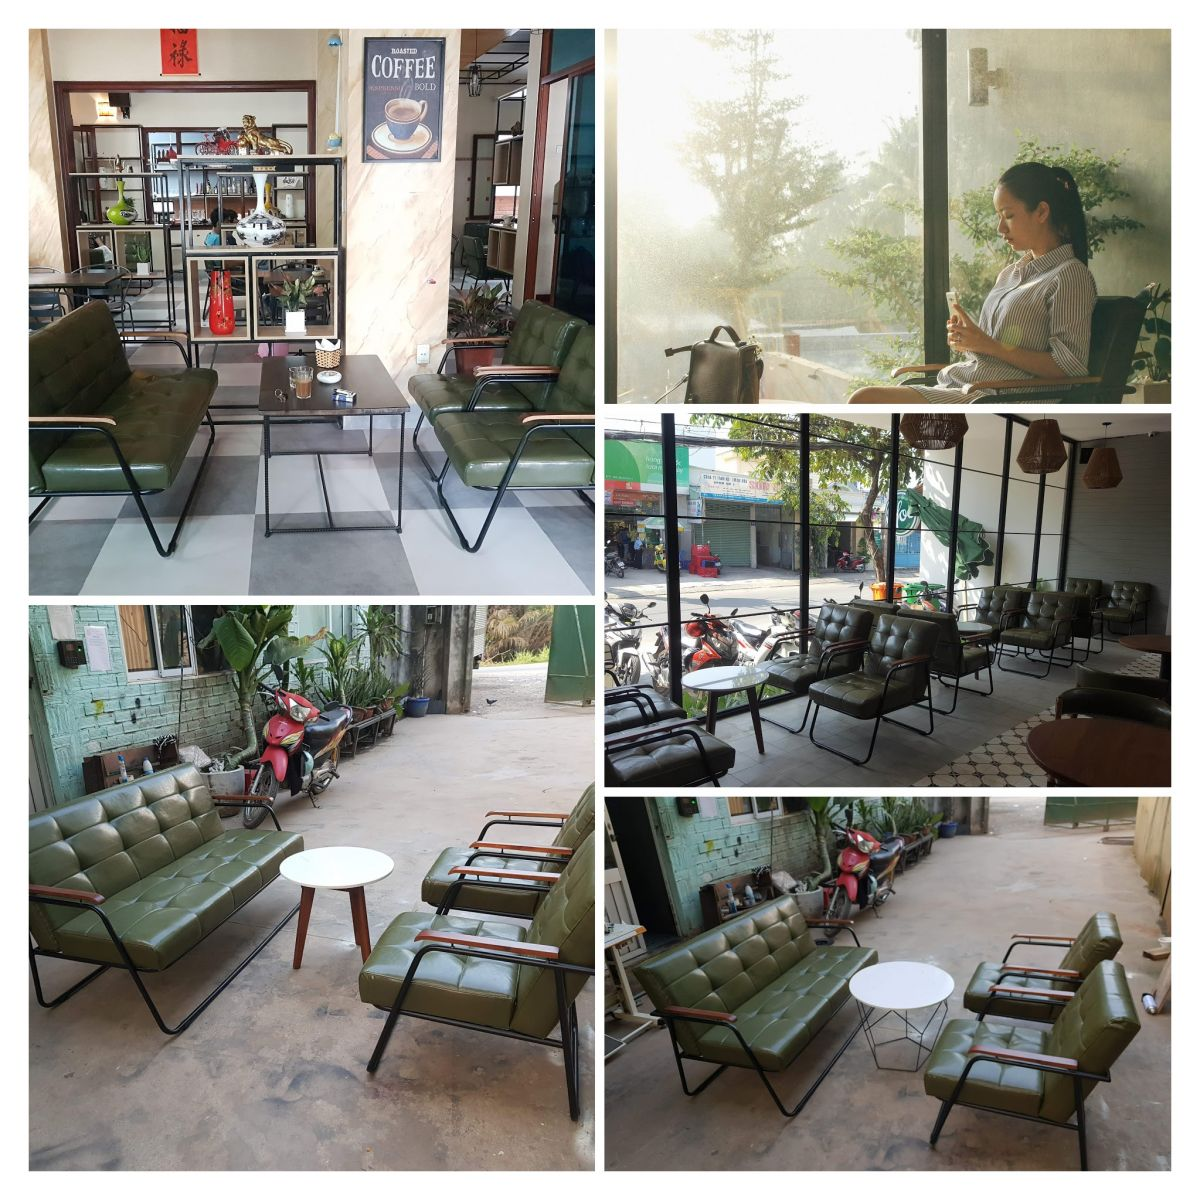 ghe-cafe-vintage-mf40-cung-duoc-su-dung-trong-sweethome